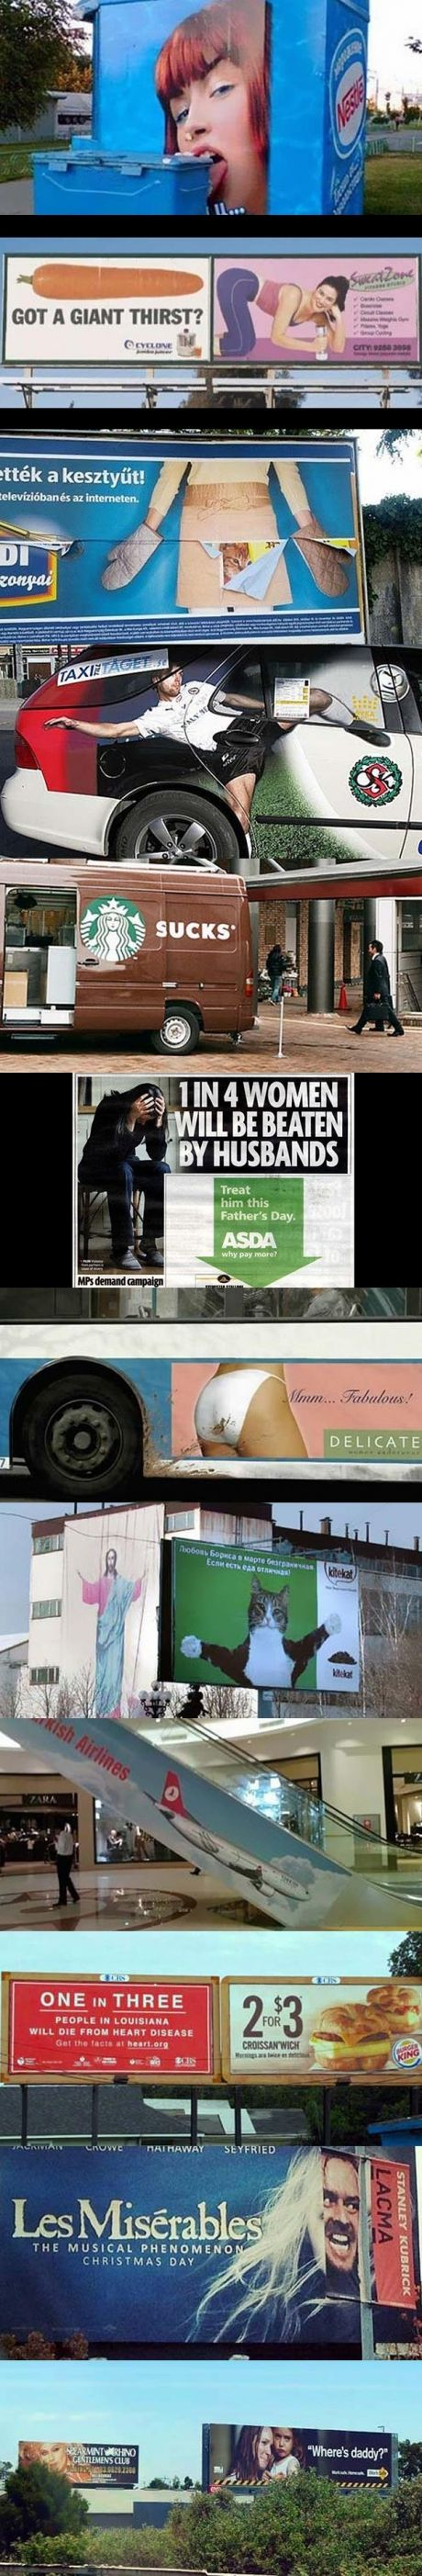 ladies down coats Awkward Ad Placements